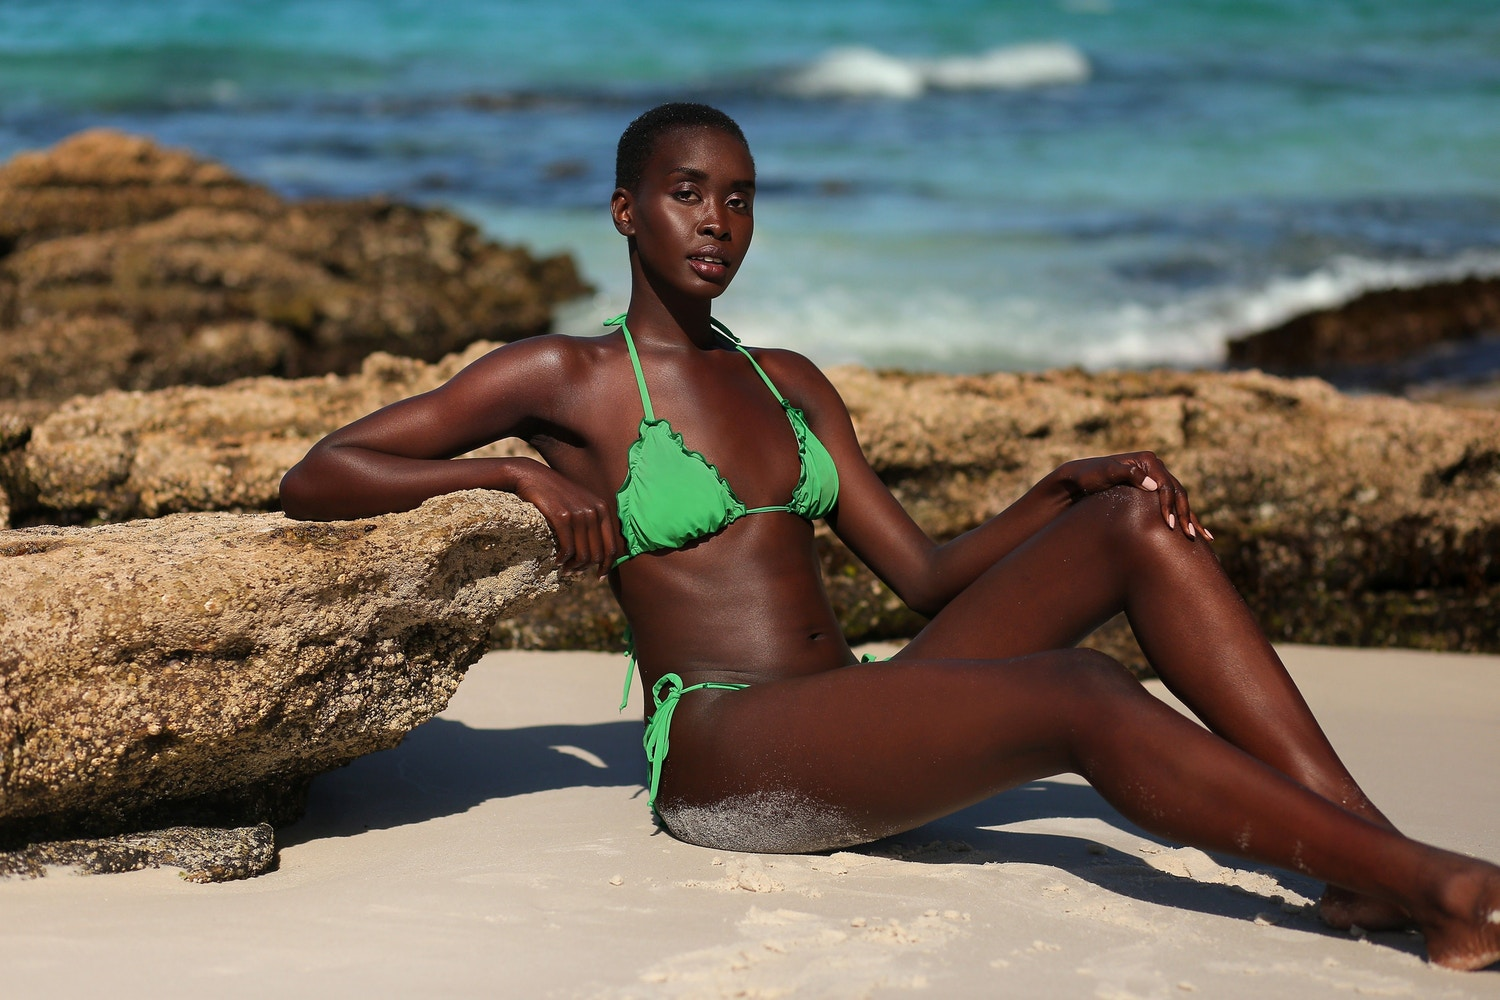 Five Minutes with Styelle Swim